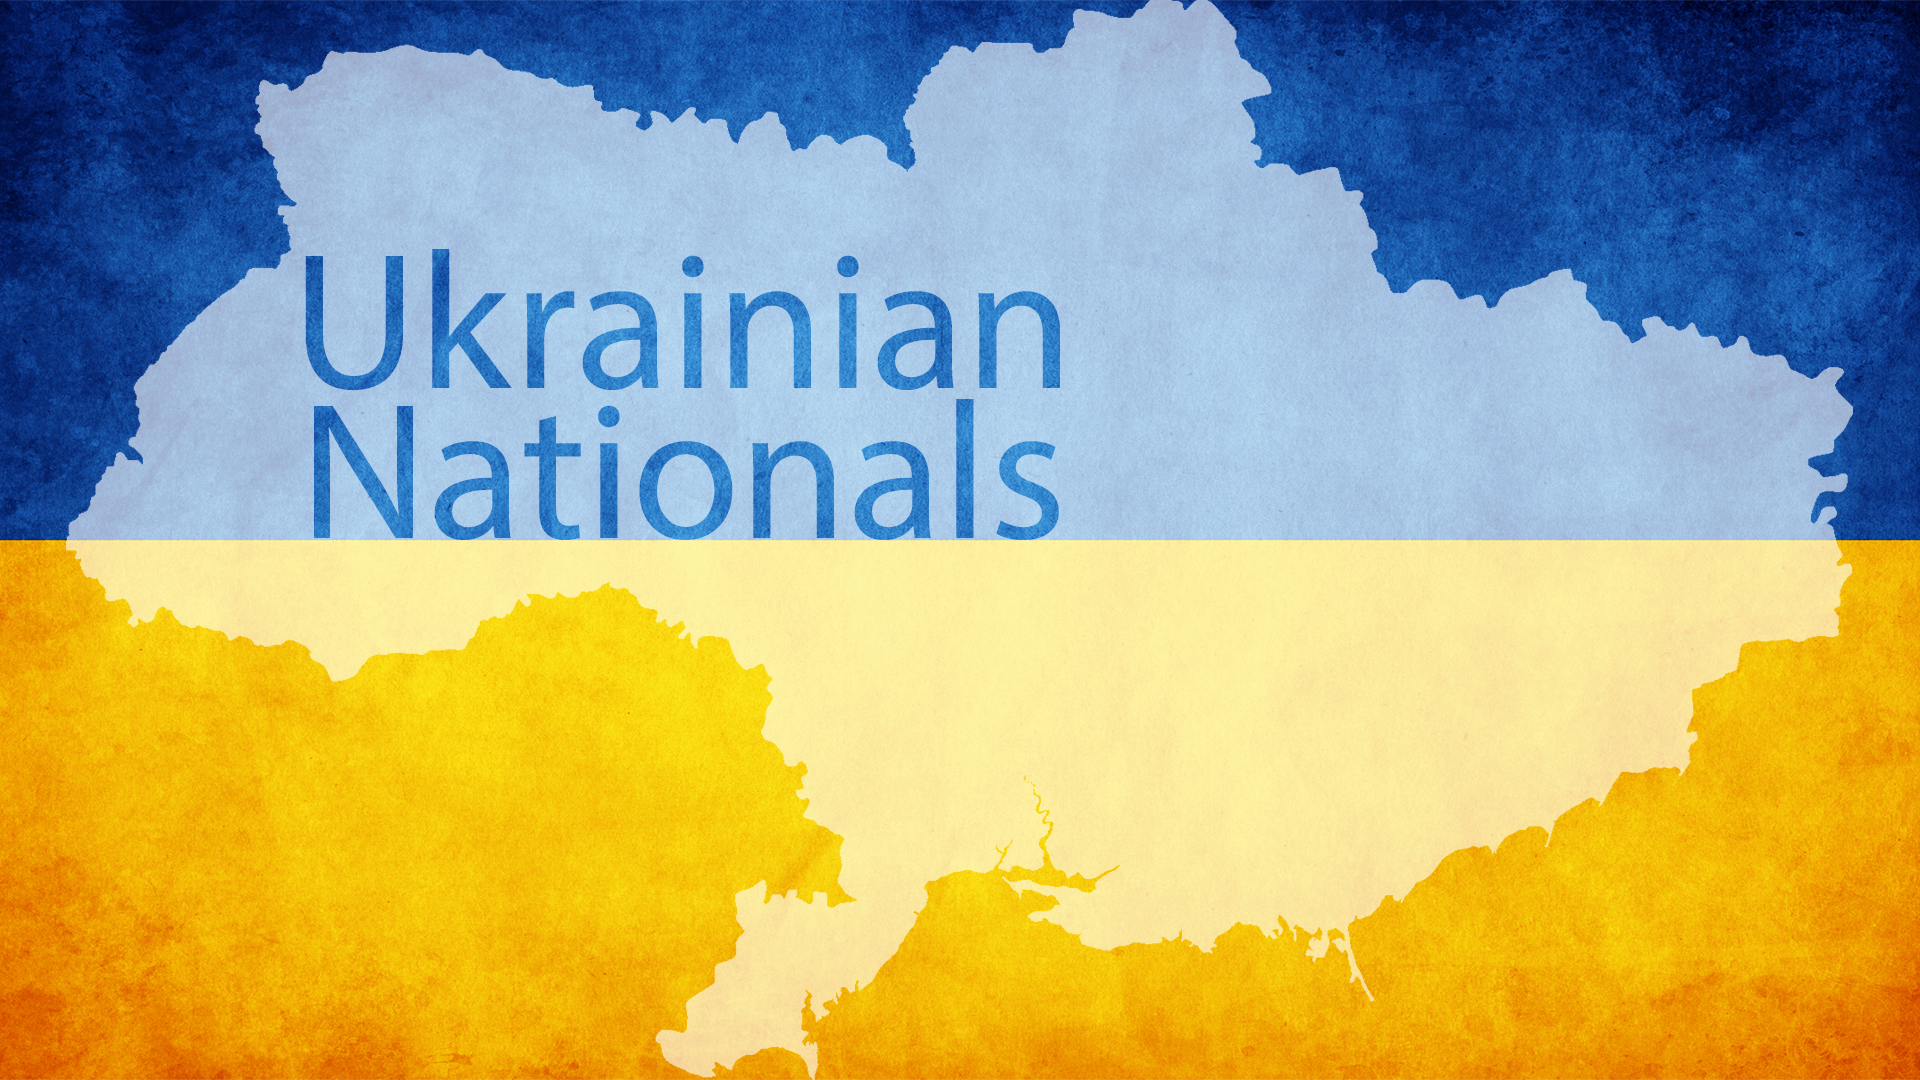 Ukrainian Nationals - We support the ministry of two Ukrainian Nationals, Zhenia and Natasha Bondarenko and Sasha and Anya Kobzar.